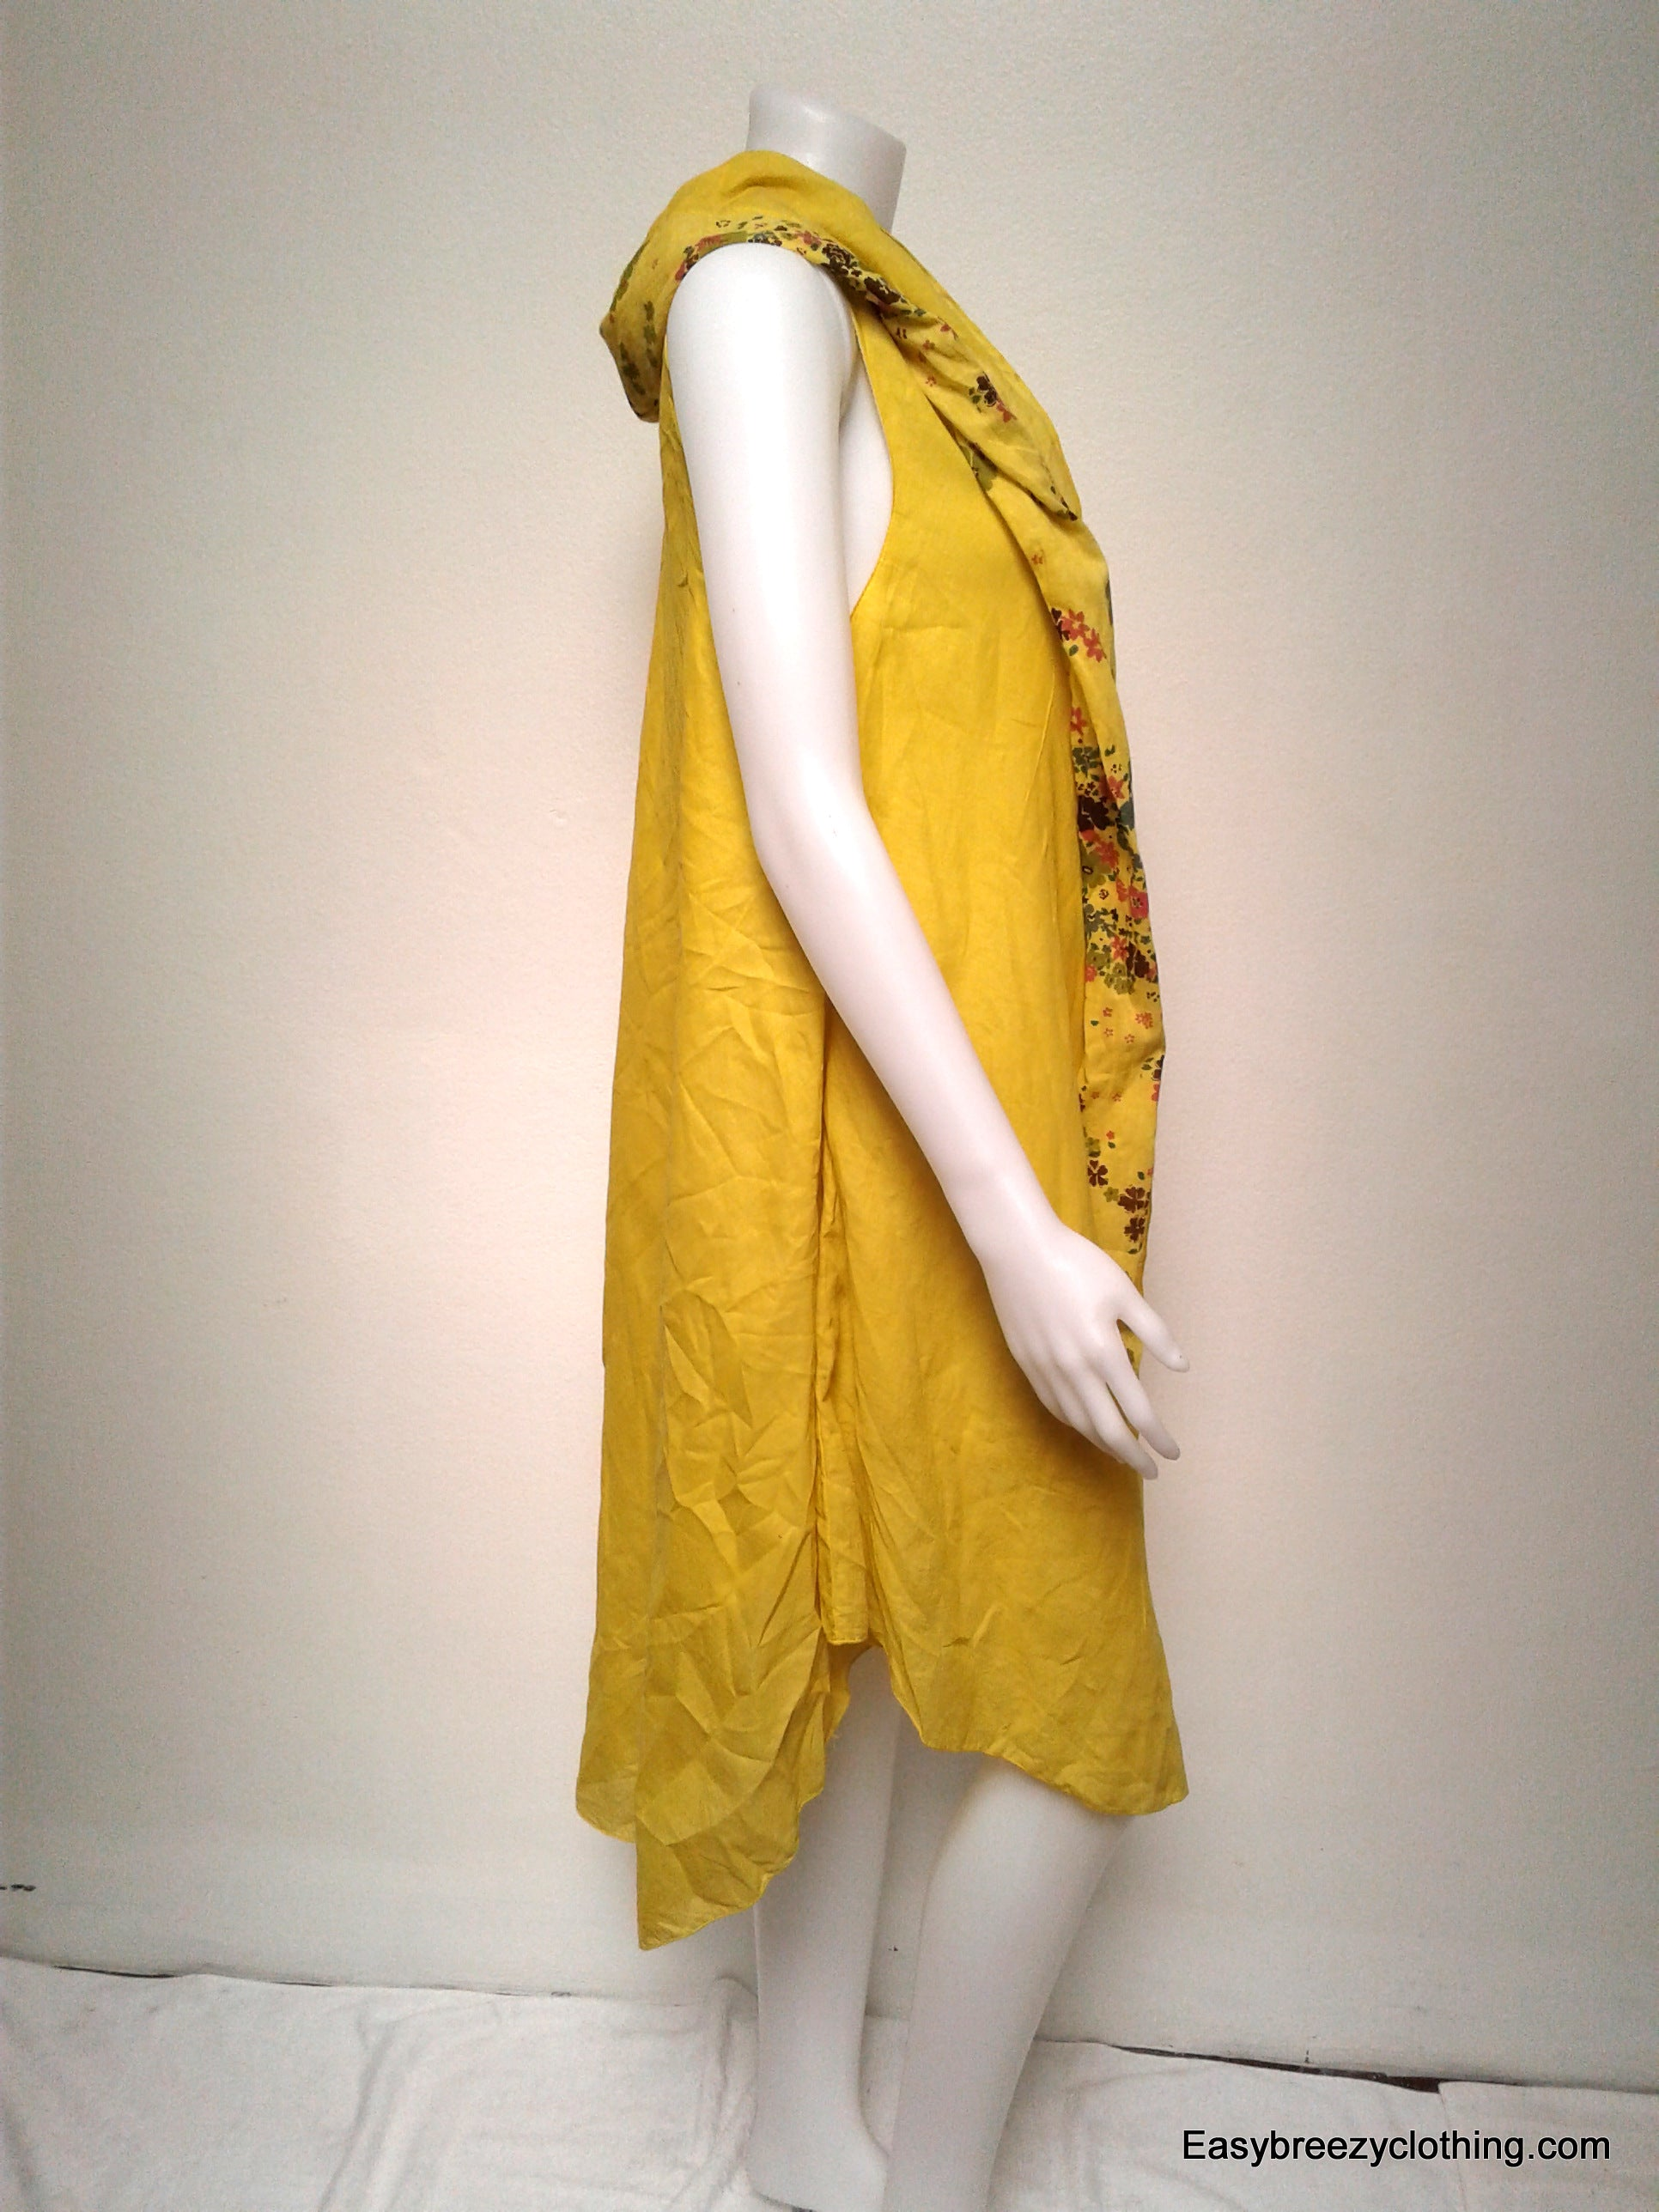 Sleeveless Bias Cut Dress with Scarf,Cotton Dresses,[Easy Breezy Clothing]